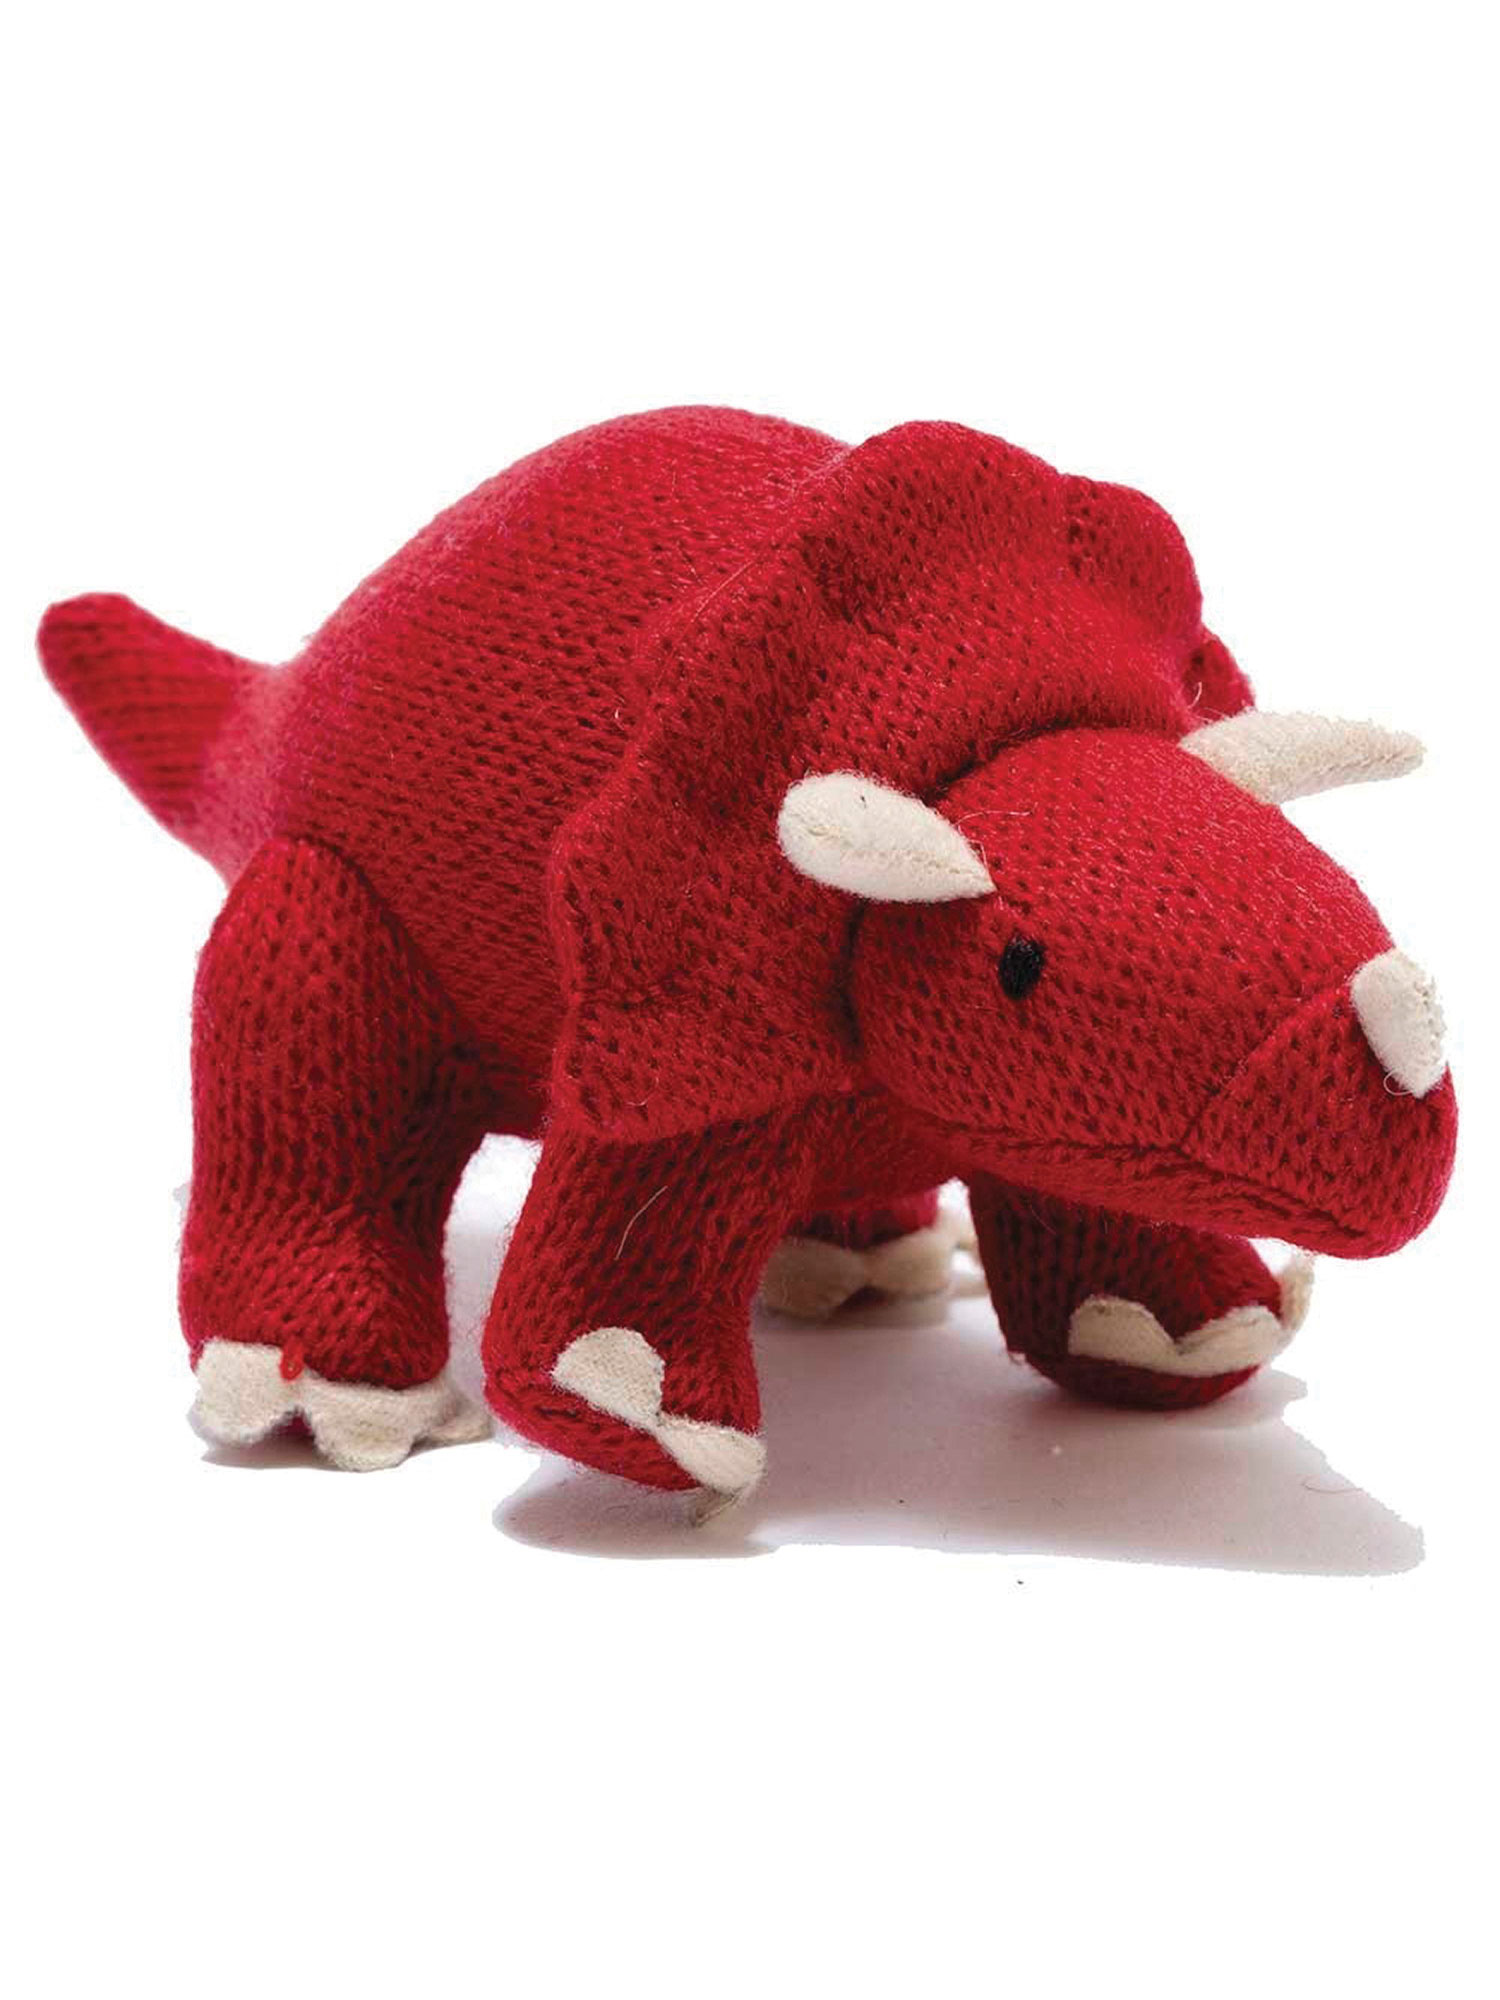 Best Years Knitted Triceratops Dinosaur Rattle